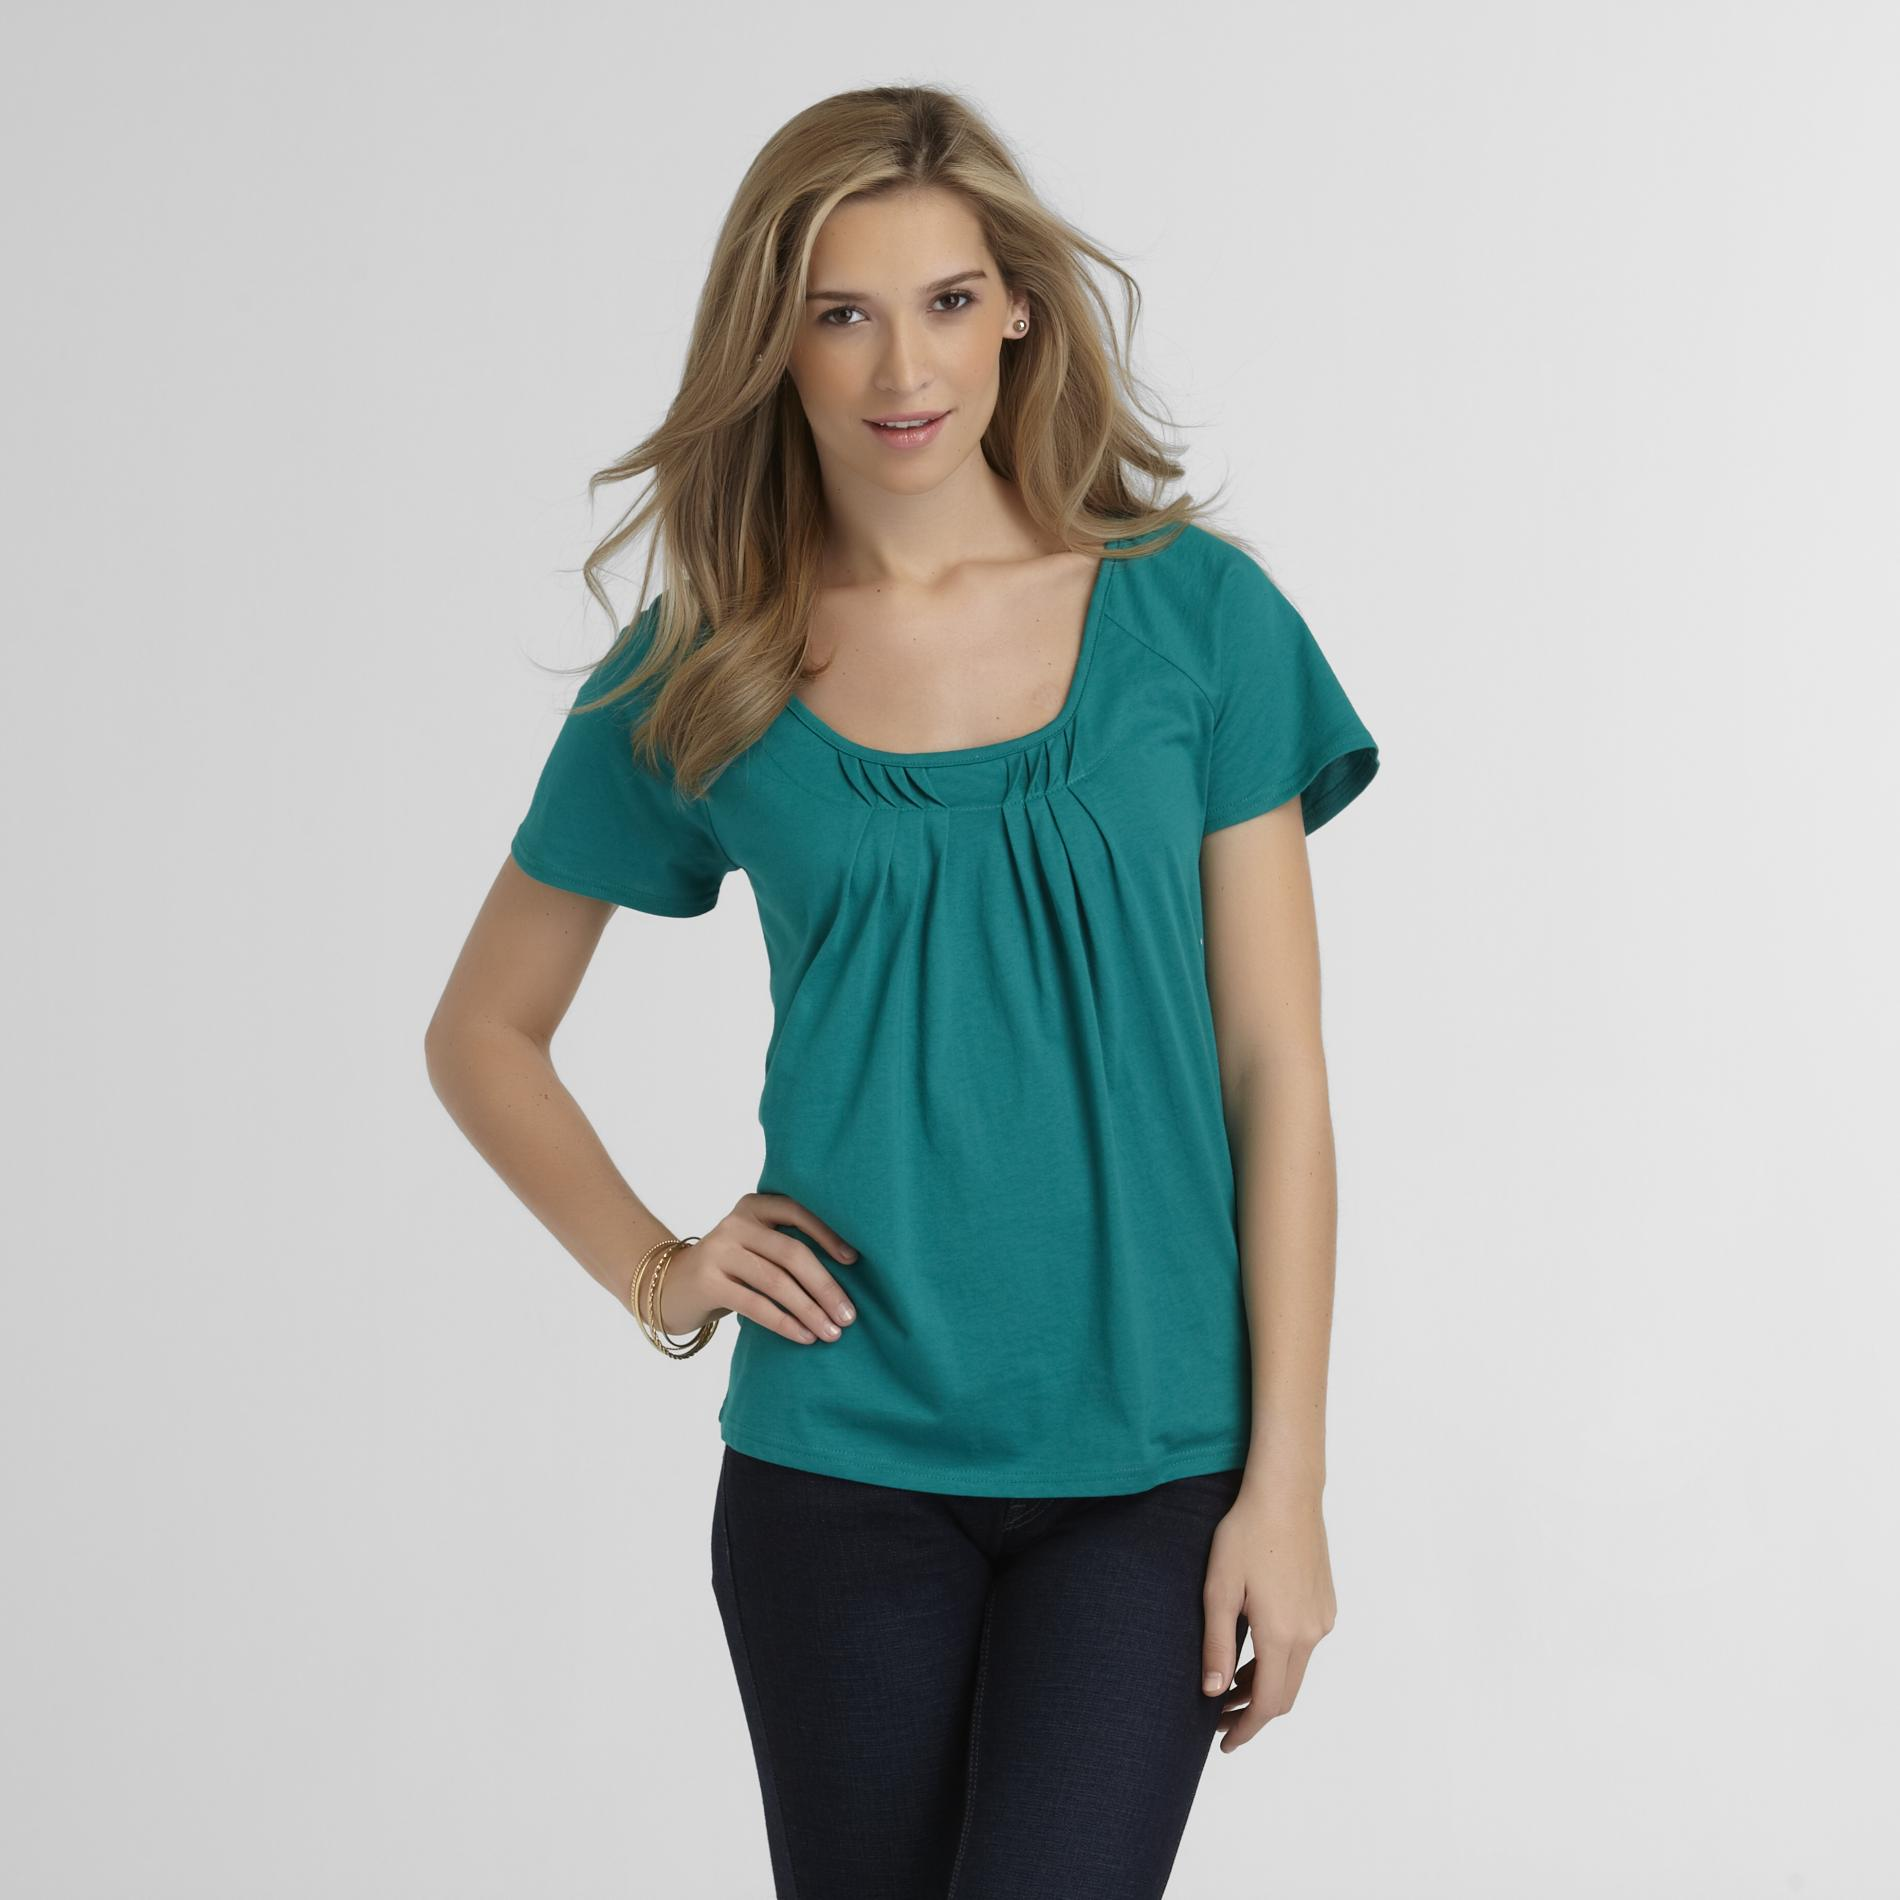 Basic Editions Women's Pleated Short Sleeve Top at Kmart.com